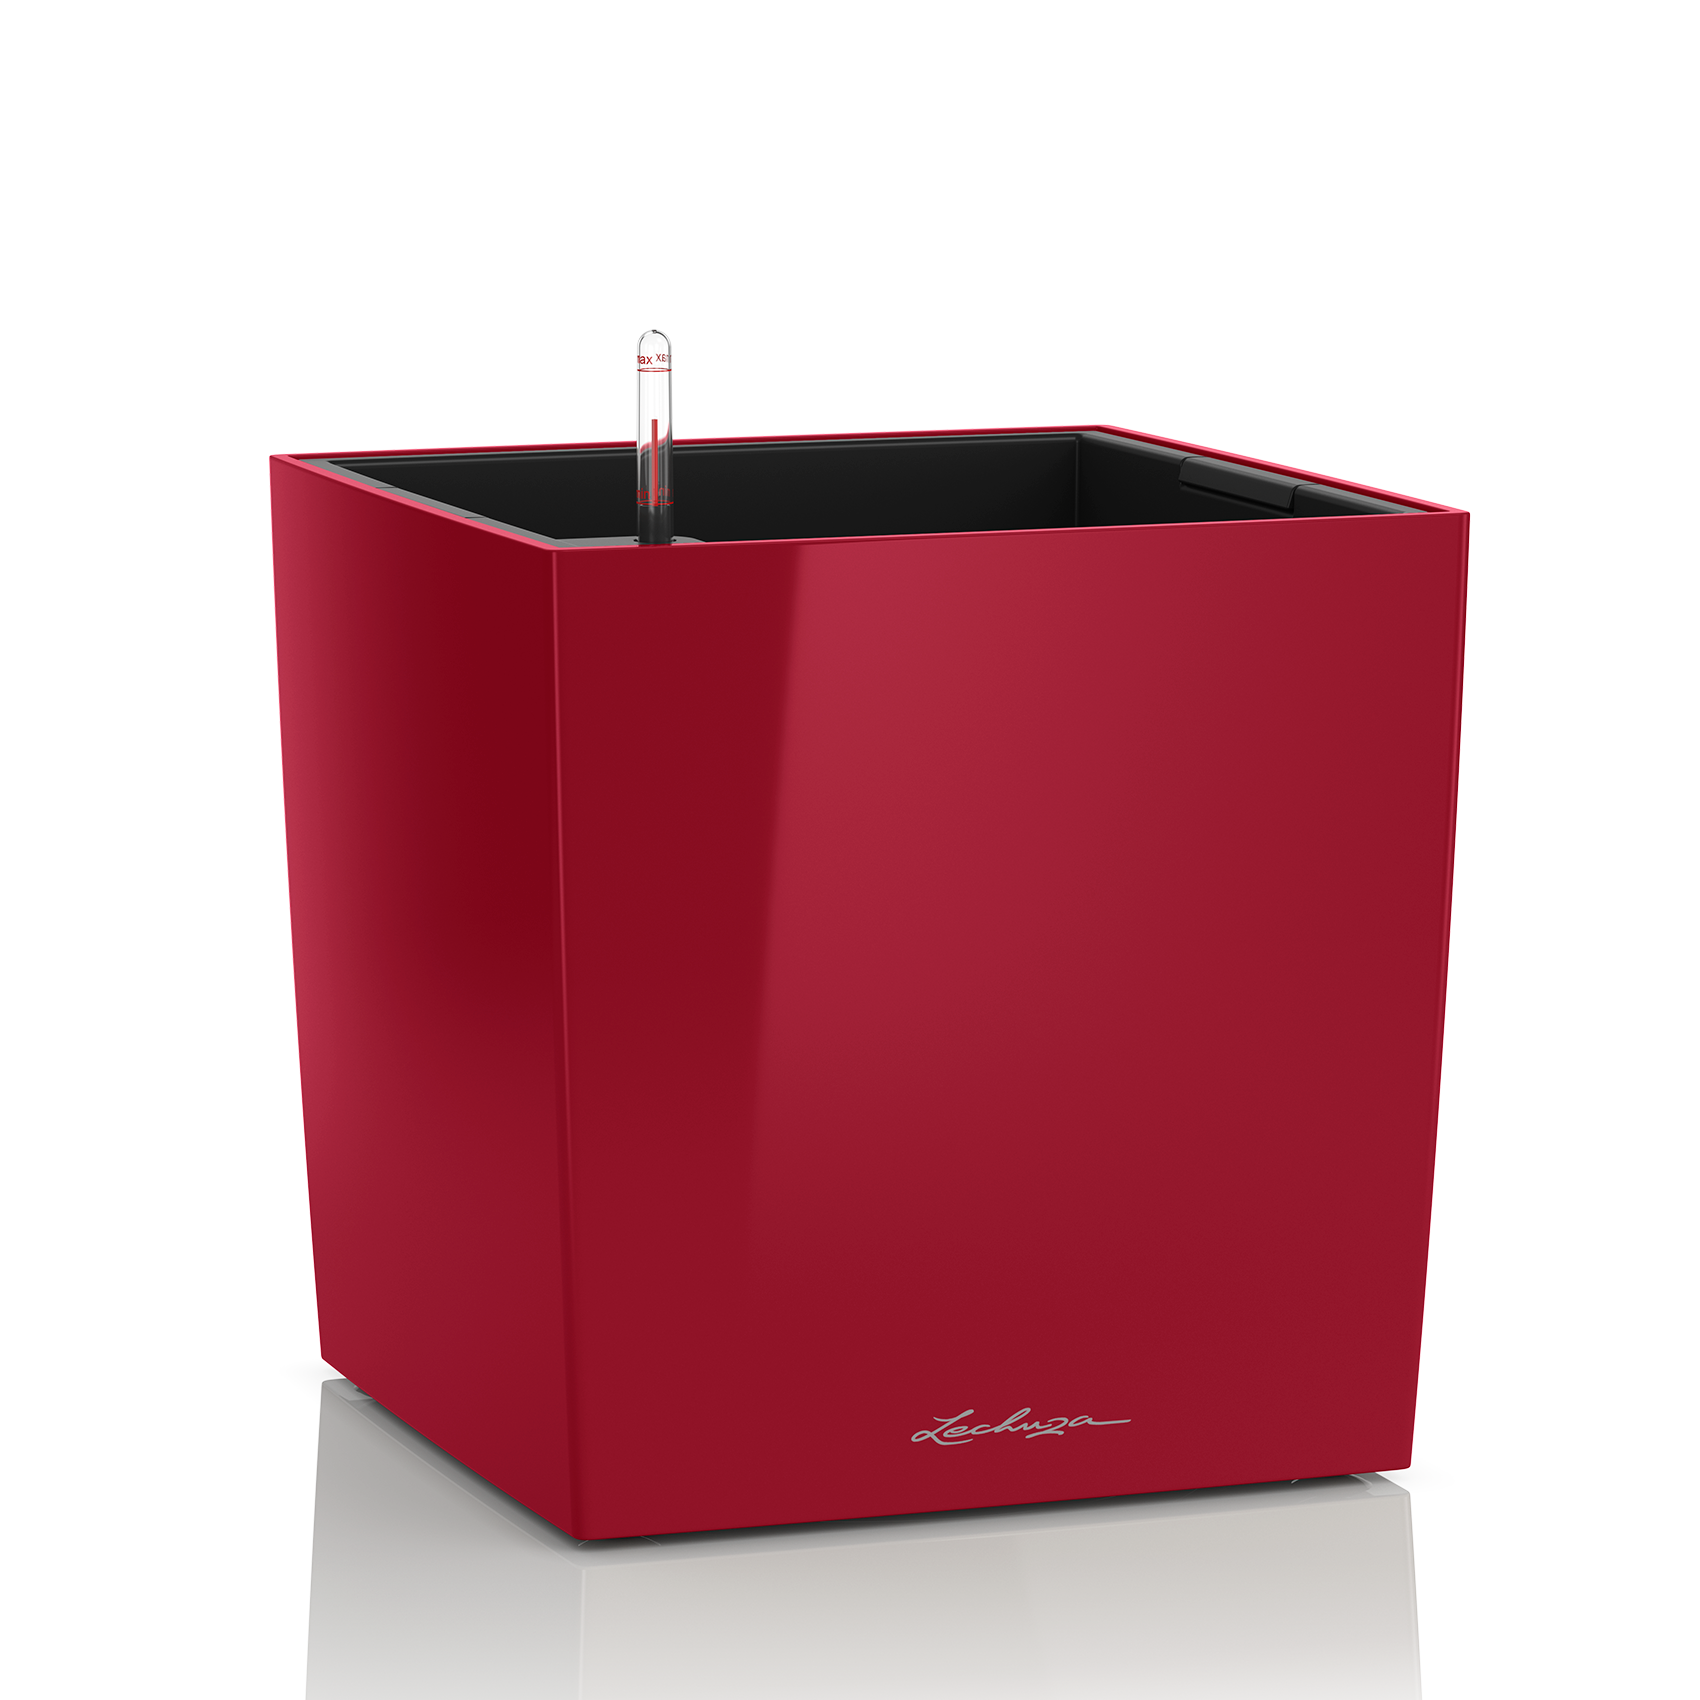 CUBE 30 scarlet red high-gloss